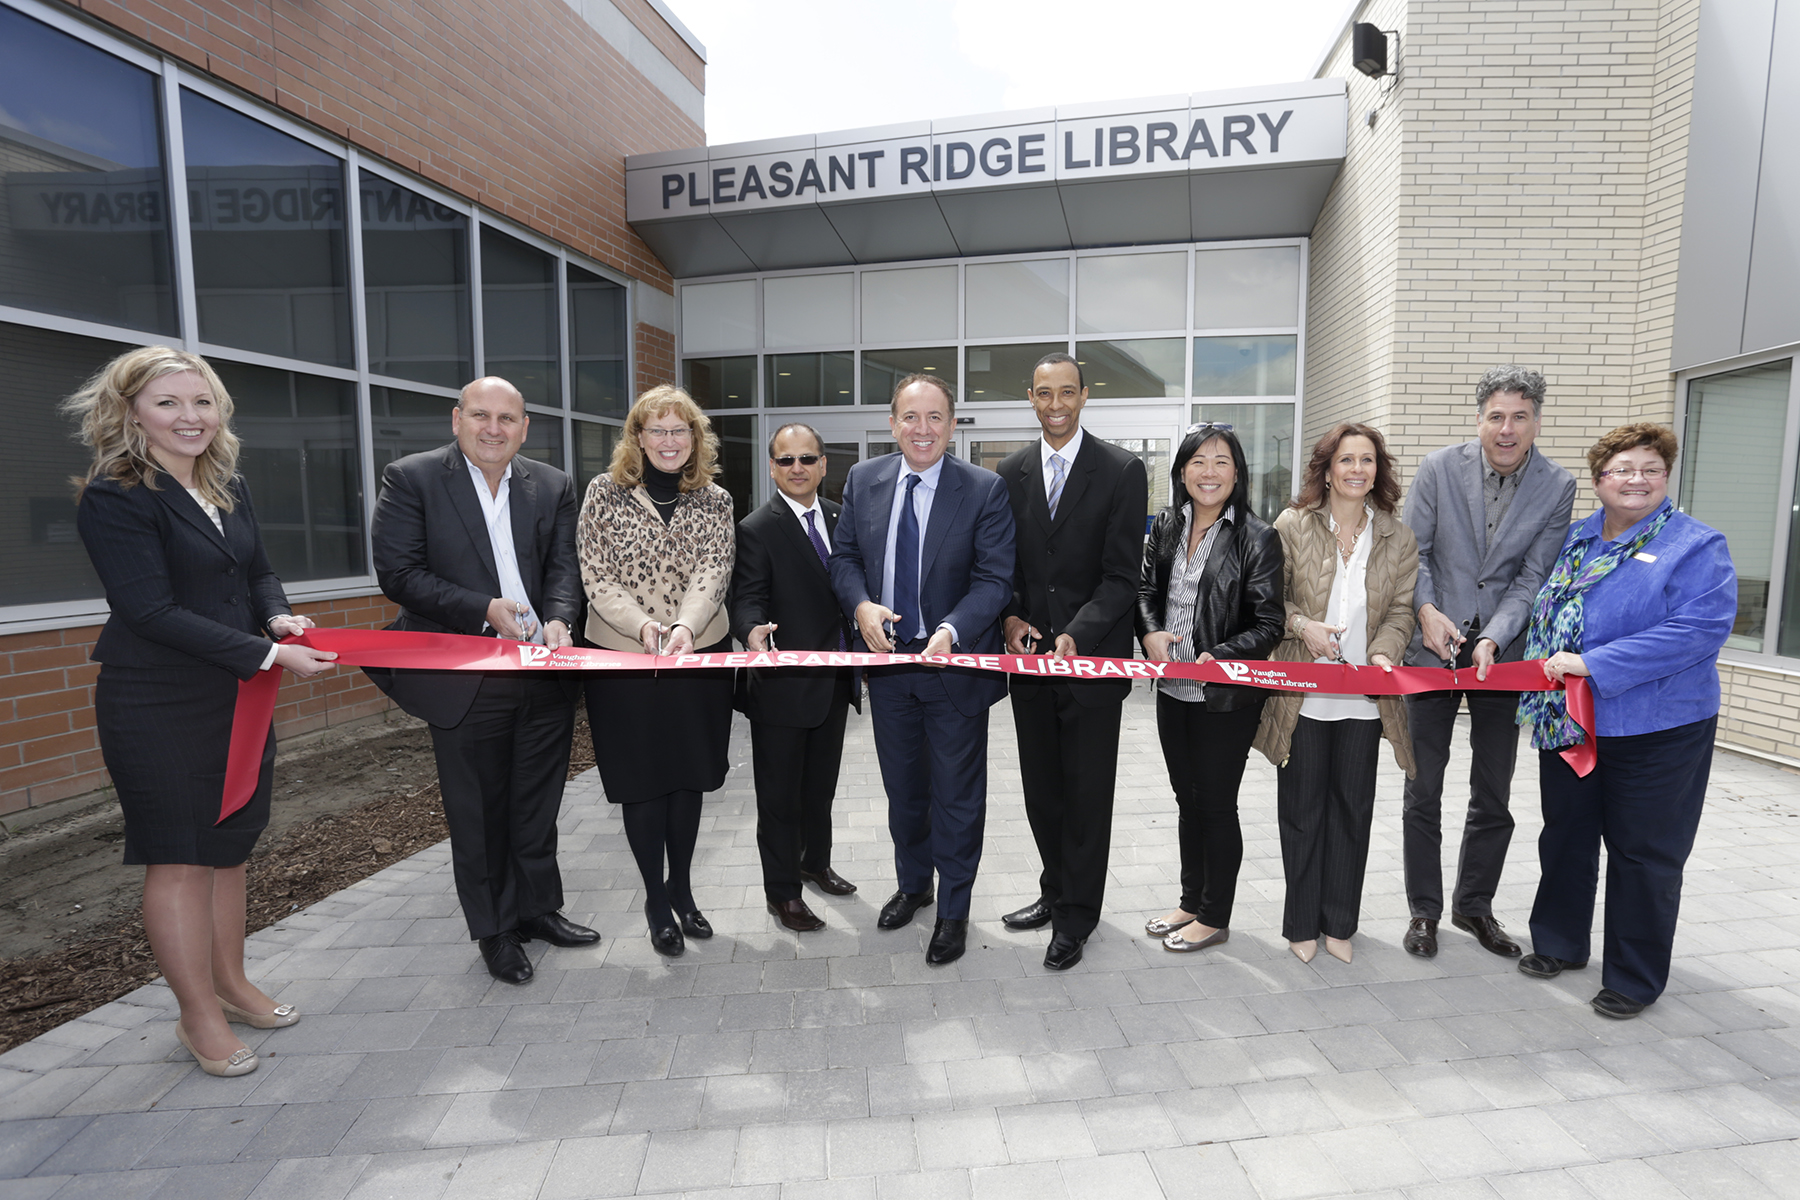 Pleasant Ridge Grand Opening Celebration